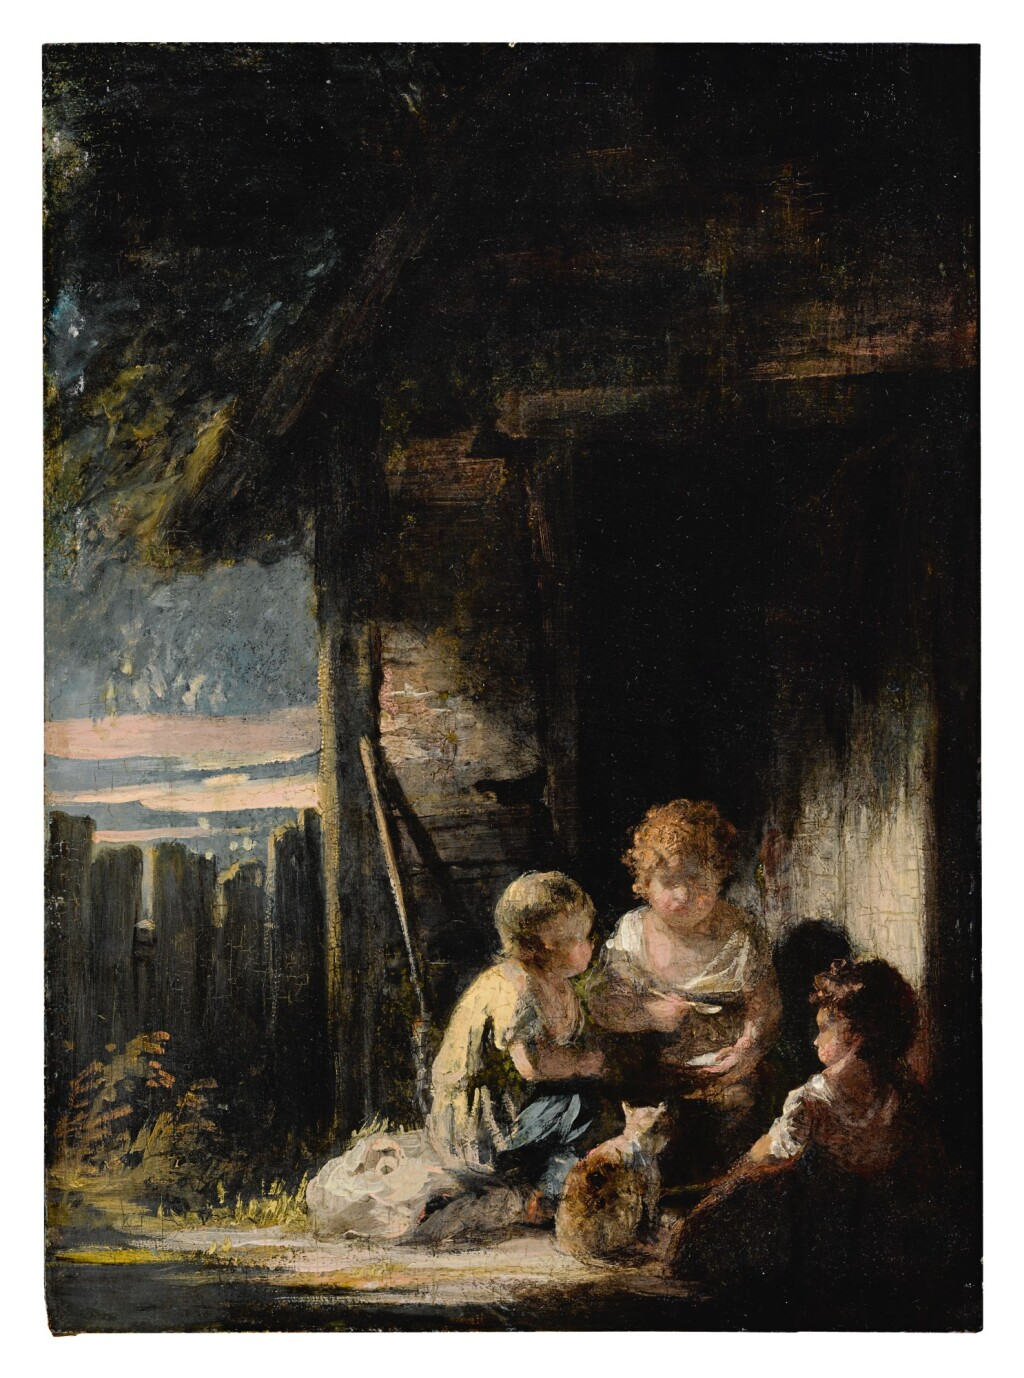 CIRCLE OF SIR JOSHUA REYNOLDS, P.R.A.   THREE CHILDREN OUTSIDE A COTTAGE DOOR WITH A CAT